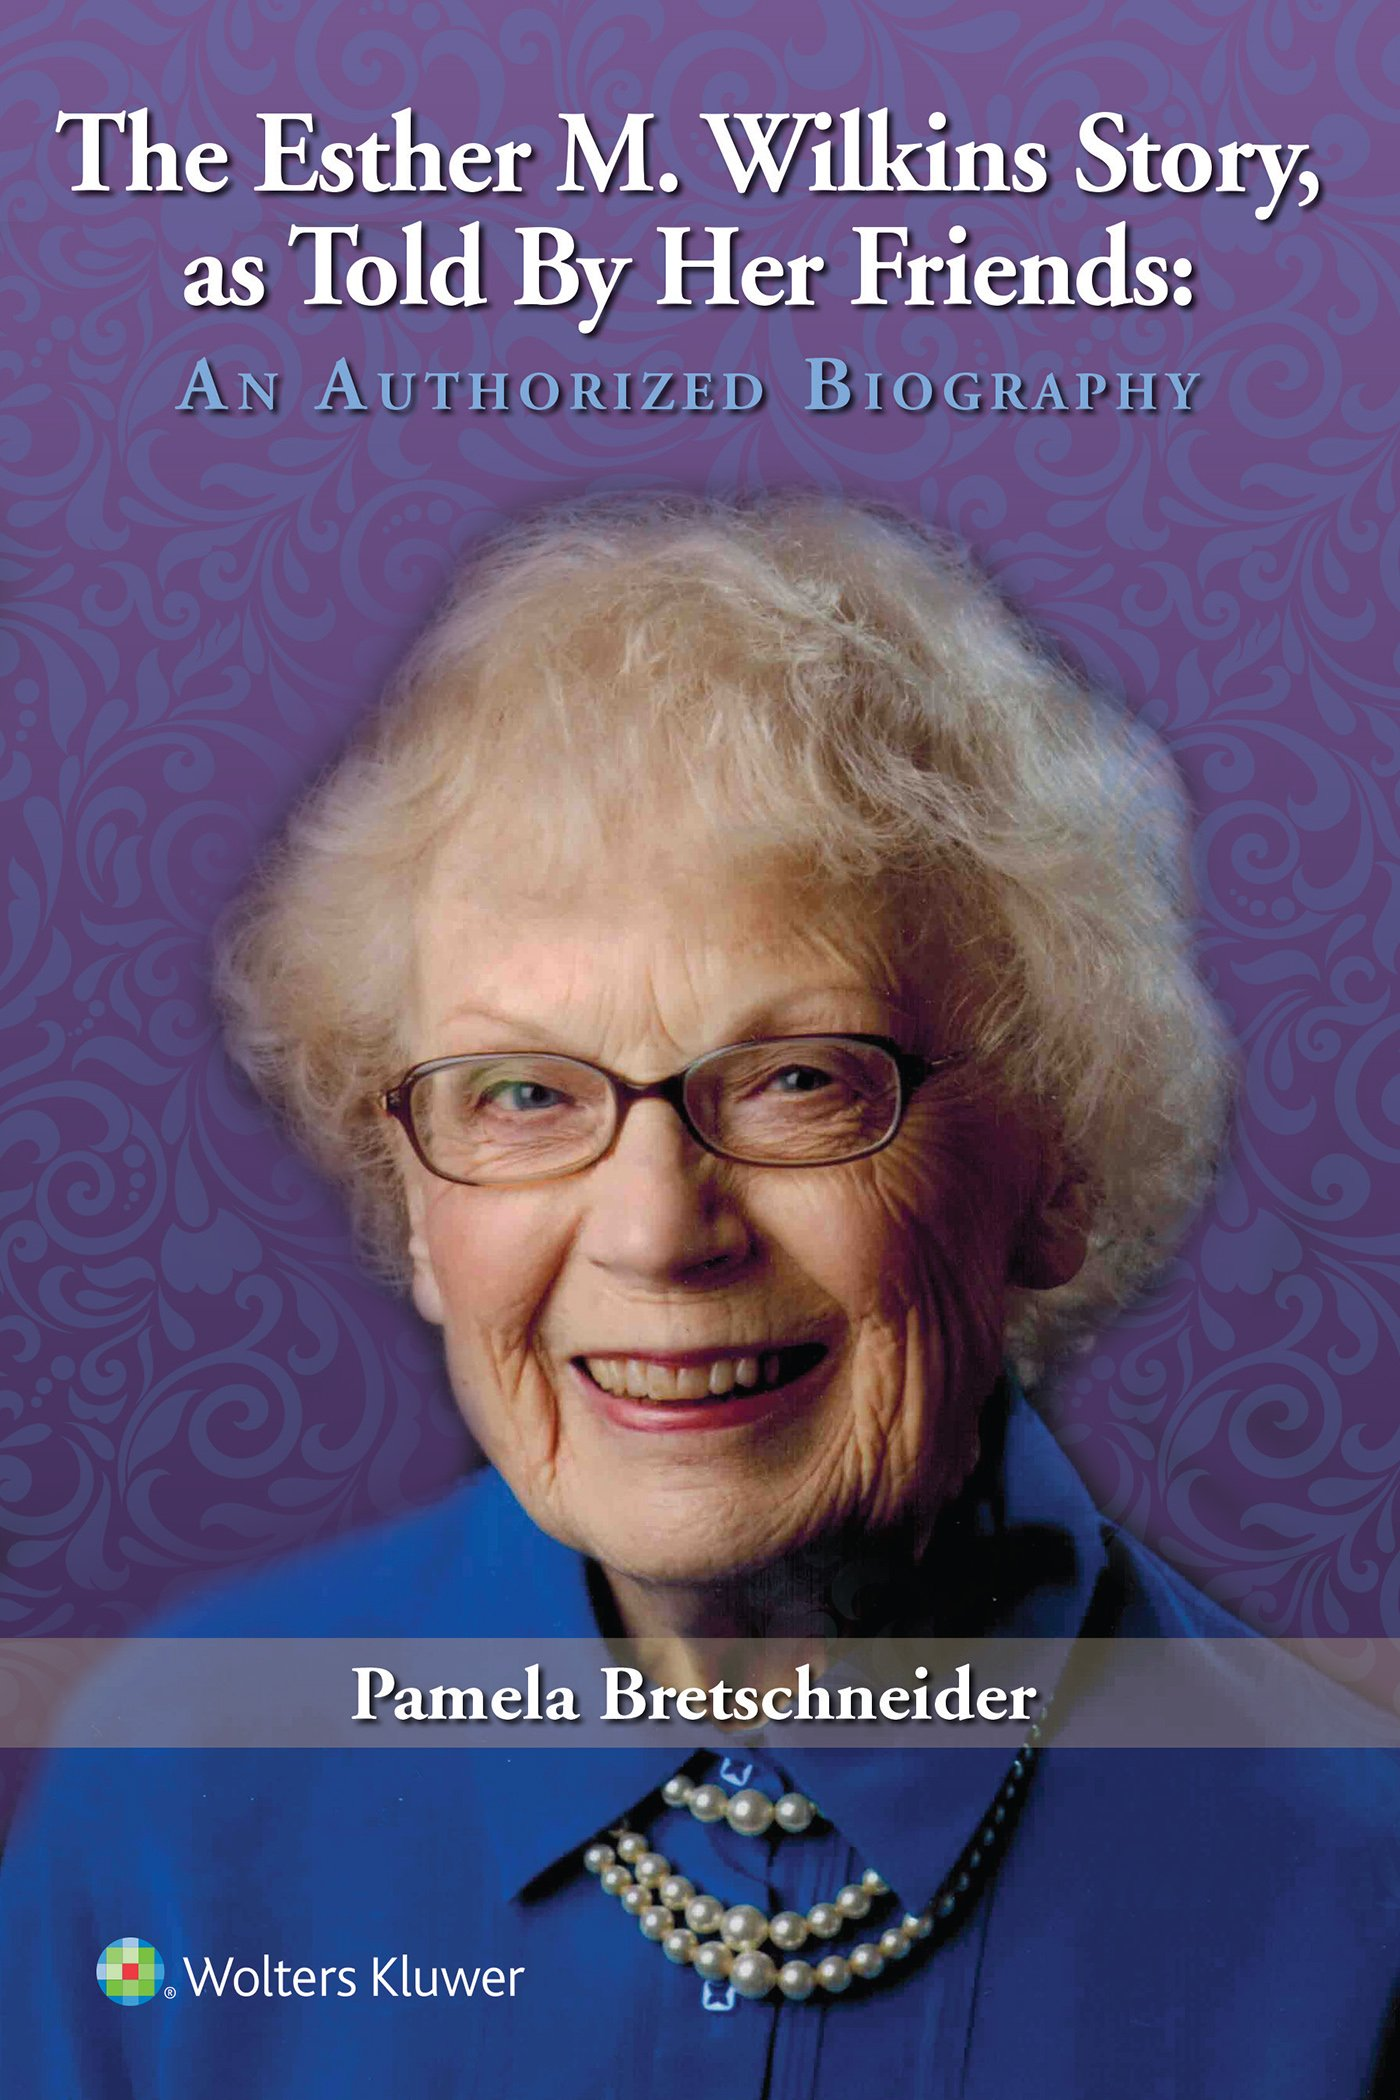 The Esther M. Wilkins Story: As Told by Her Friends: An Authorized Biography